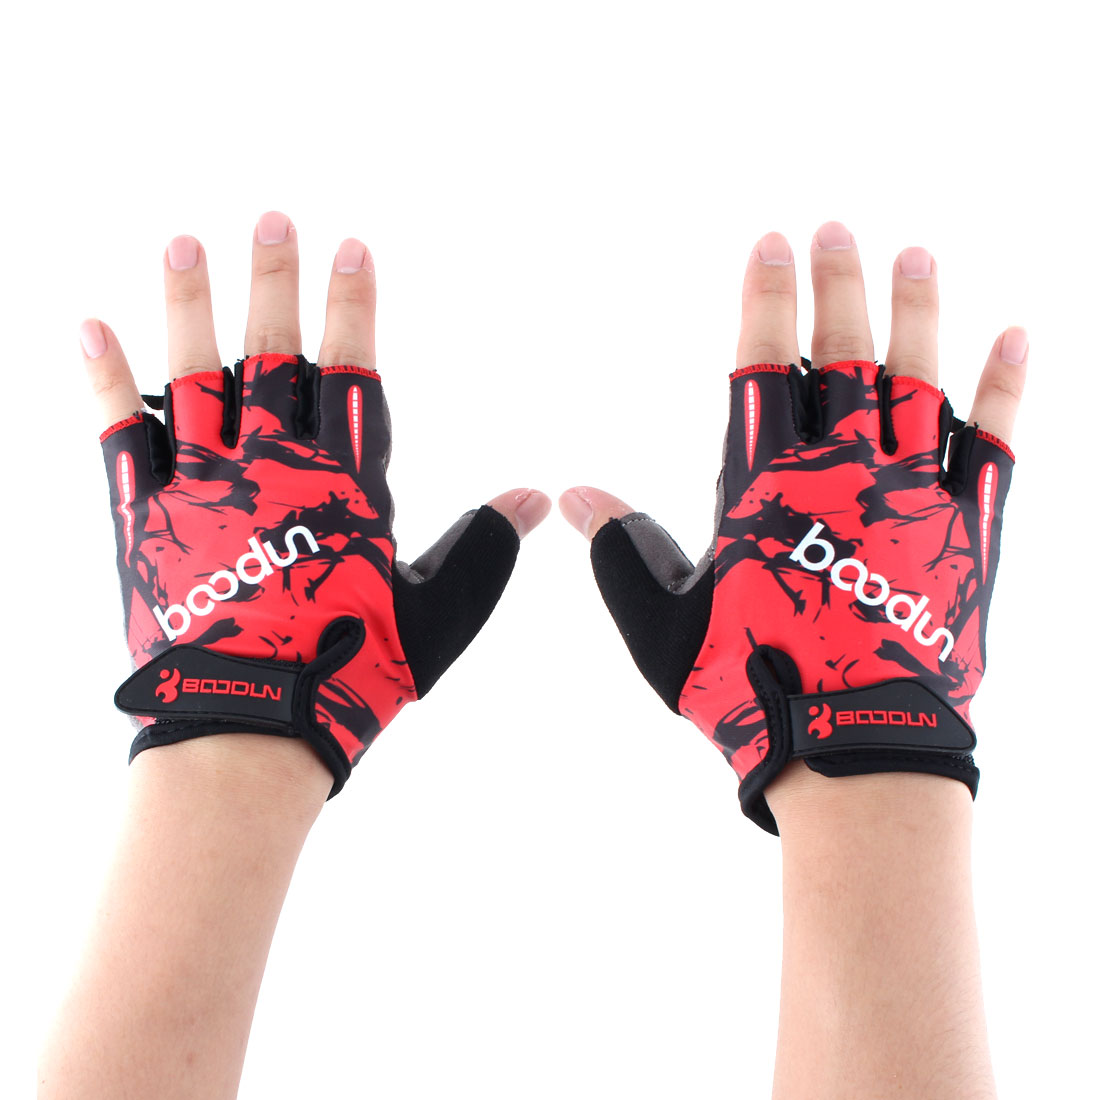 BOODUN Authorized Polyester Exercise Sports Gym Lifting Training Bodybuilding Protector Half Finger Fitness Gloves Red L Pair